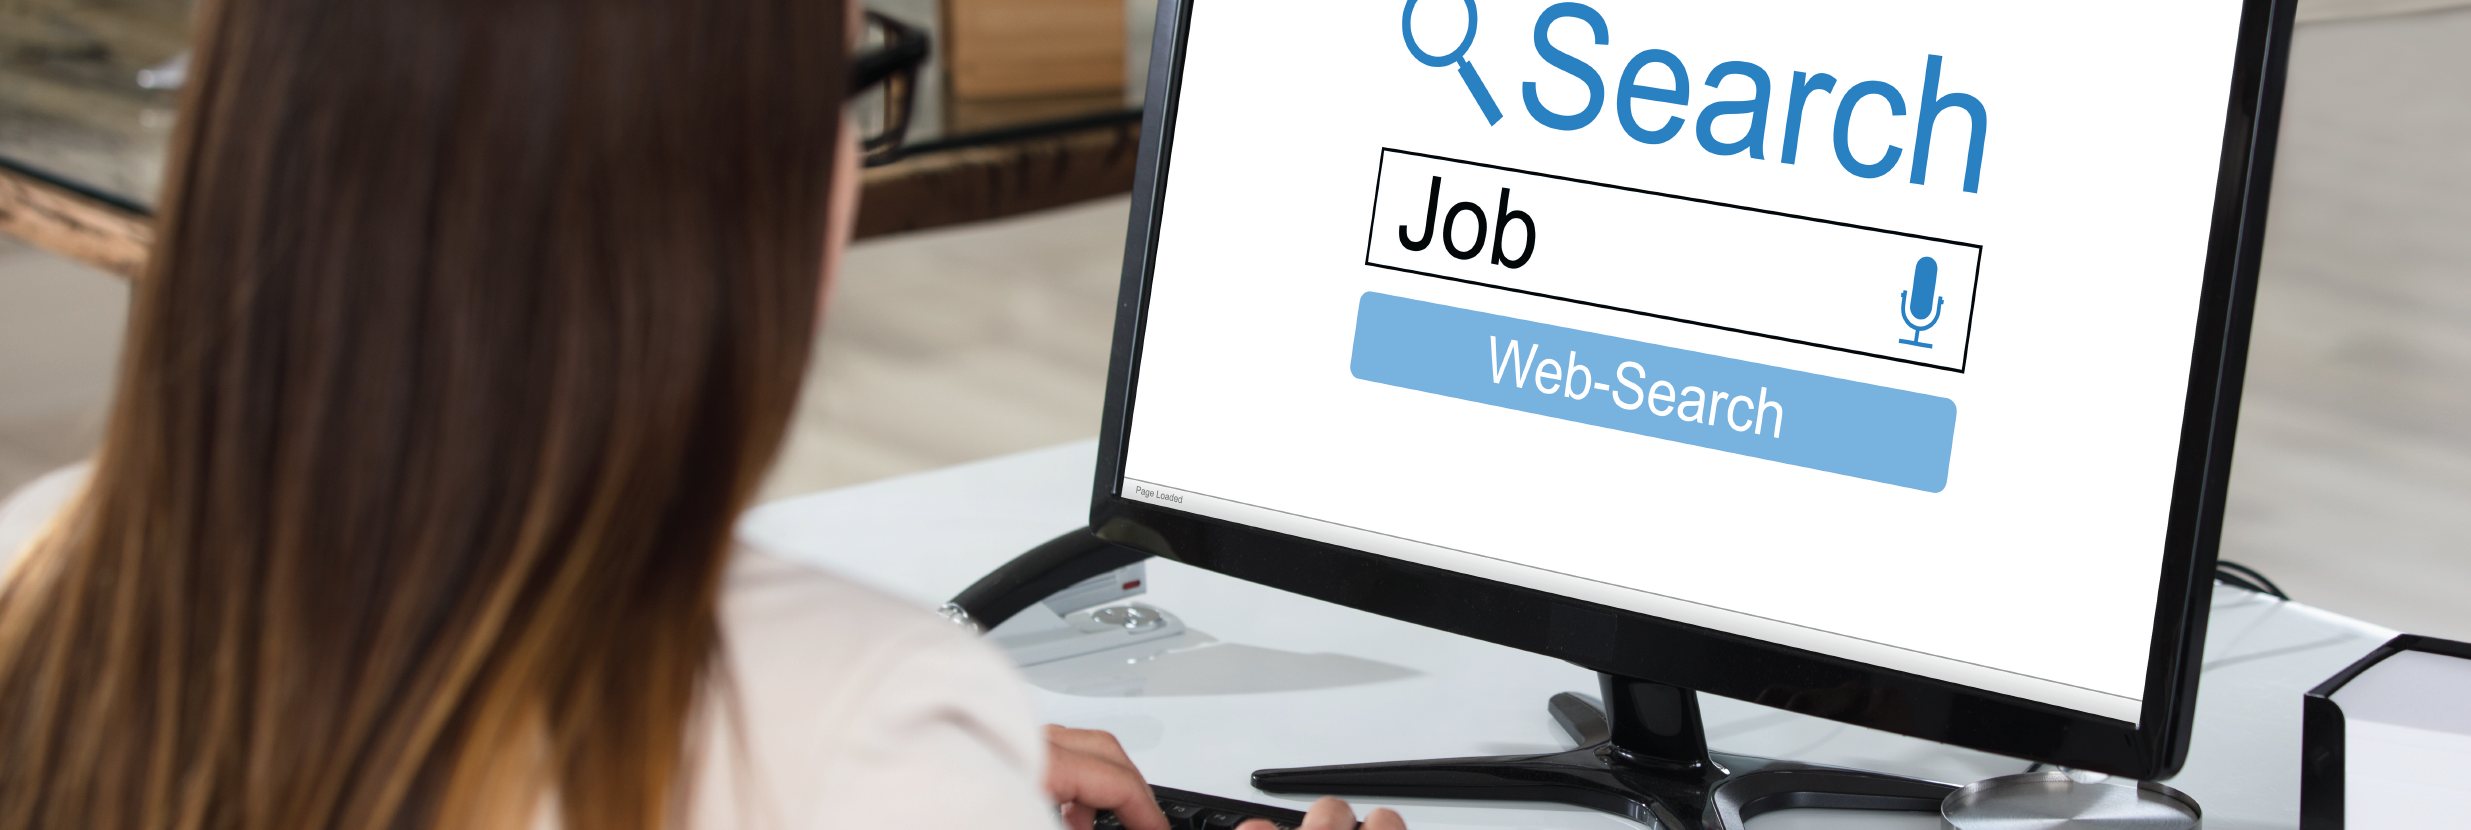 Rethink Your Job Search: 5 Smarter Ways to Find Your Dream Job